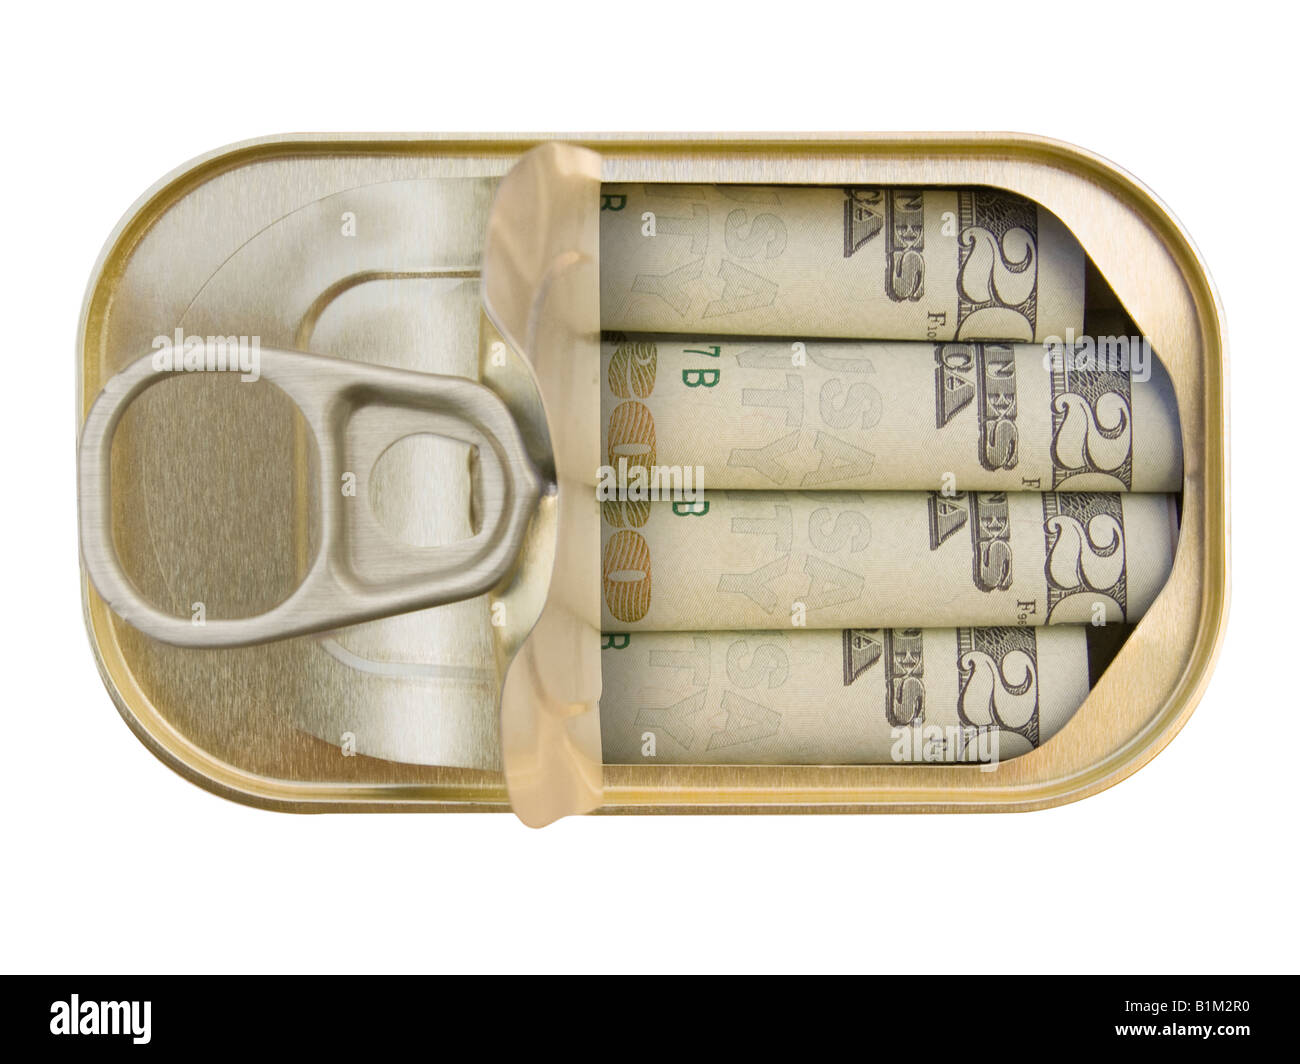 Plan view of a Ring Pull Tin containing rolled 20 Dollar notes on white background - Concept - Stock Image